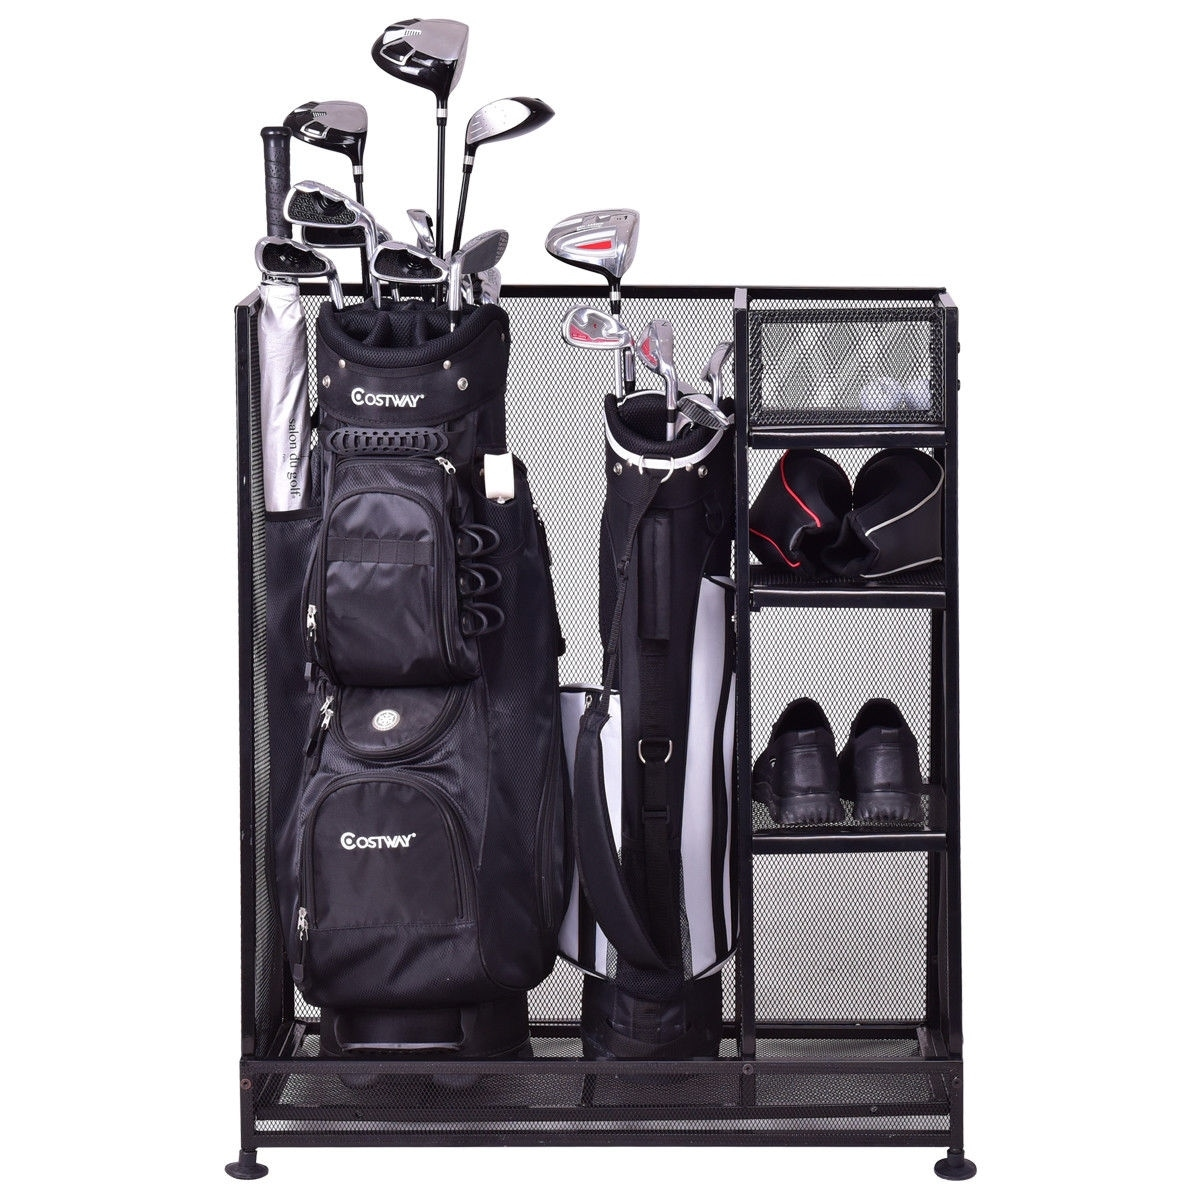 Goplus Dual Golf Organizer Storage Rack Fit 1 2 Bags Clubs Accessories Black On Free Shipping Today 19587421